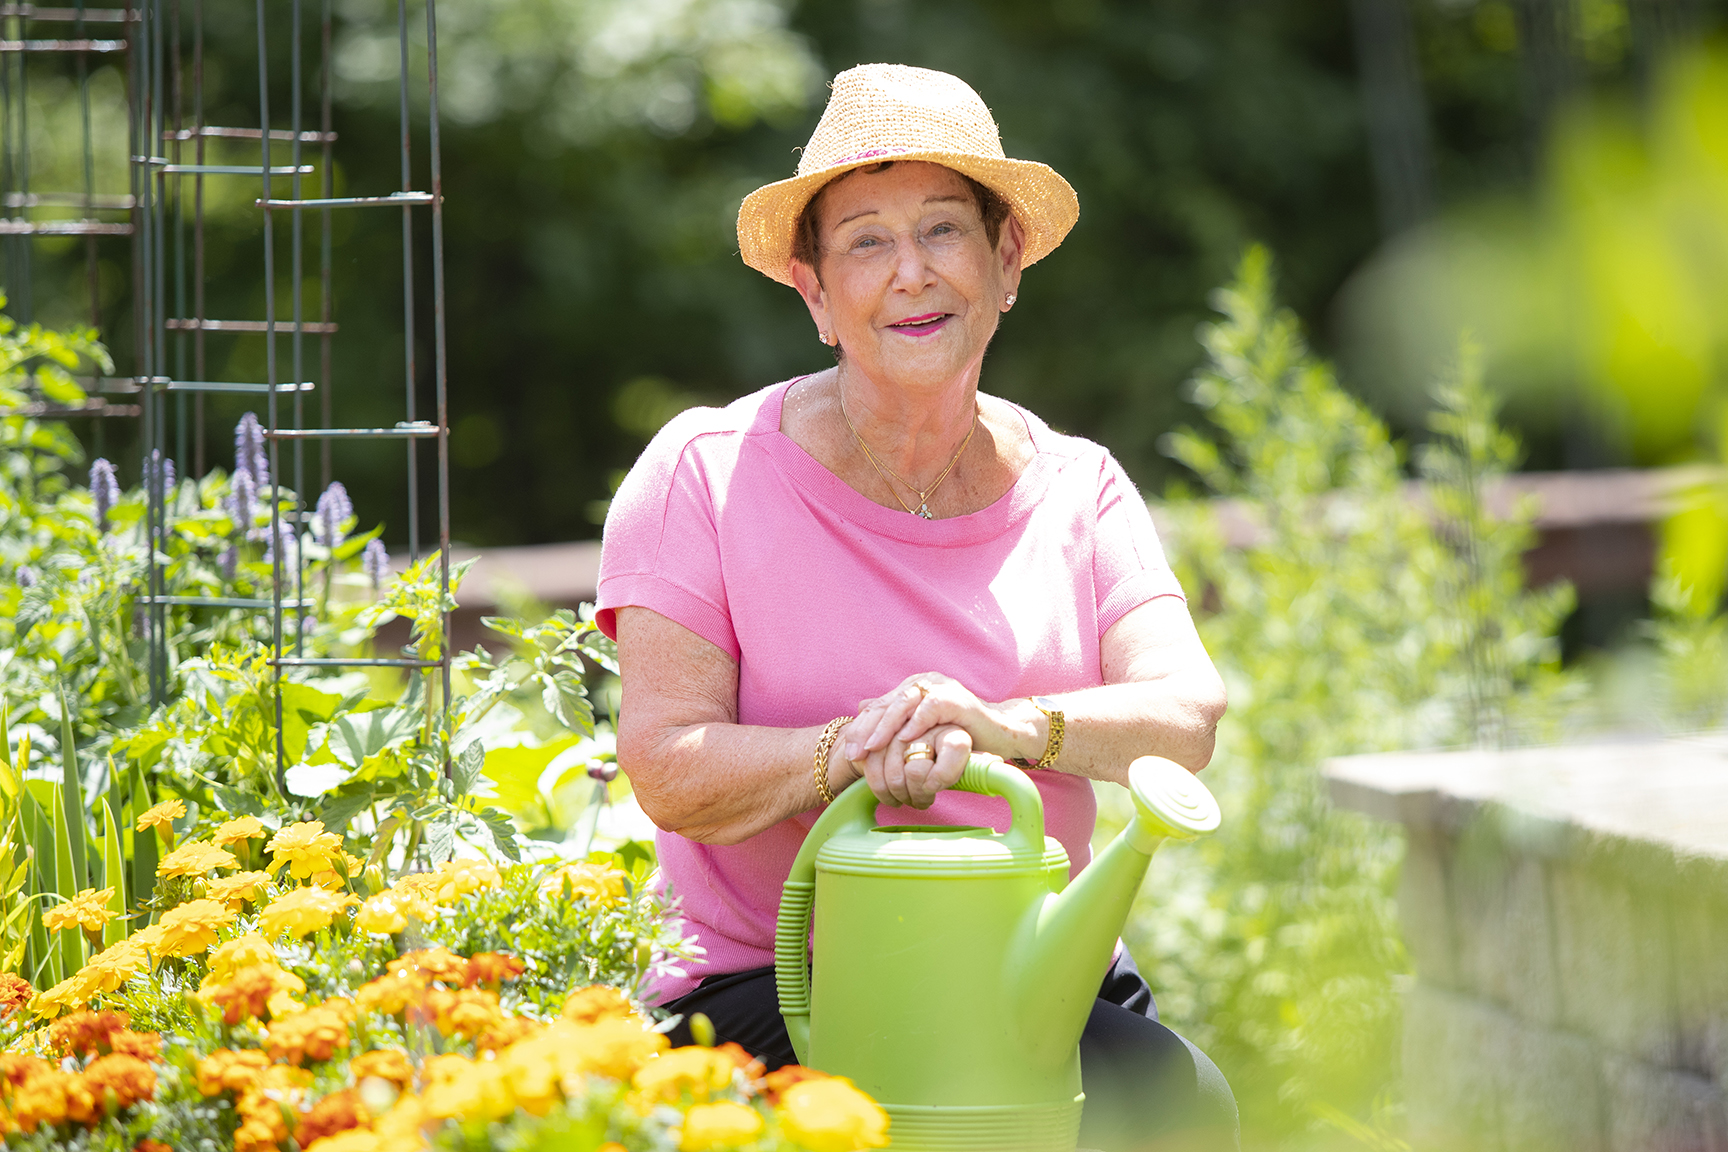 Independent Living Resident gardening in RiverWoods Manchester, Manchester. NH